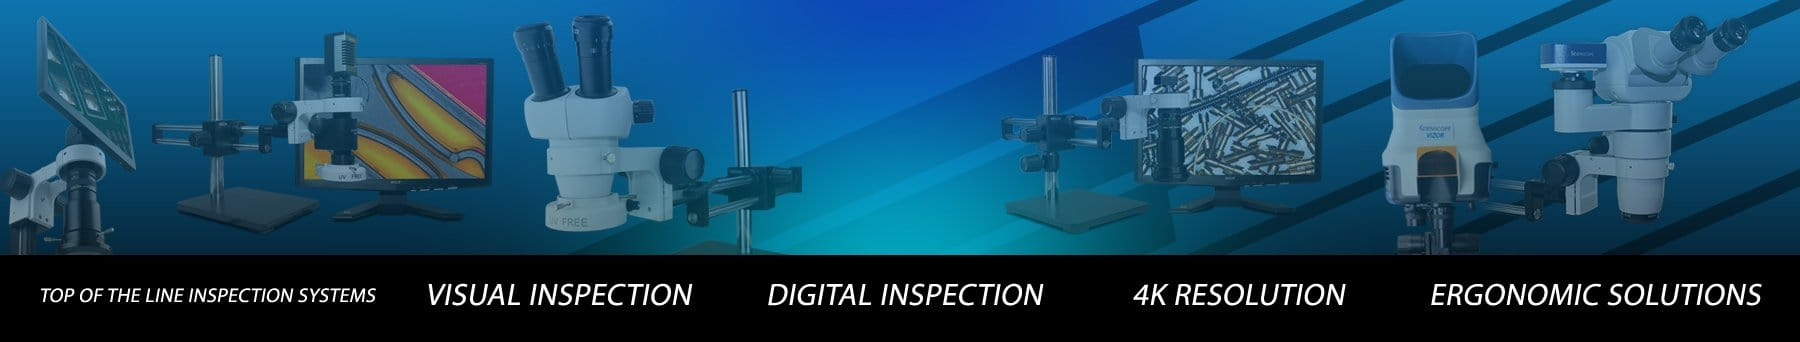 We offer a full line of optical, ergonomic, and digital inspection systems